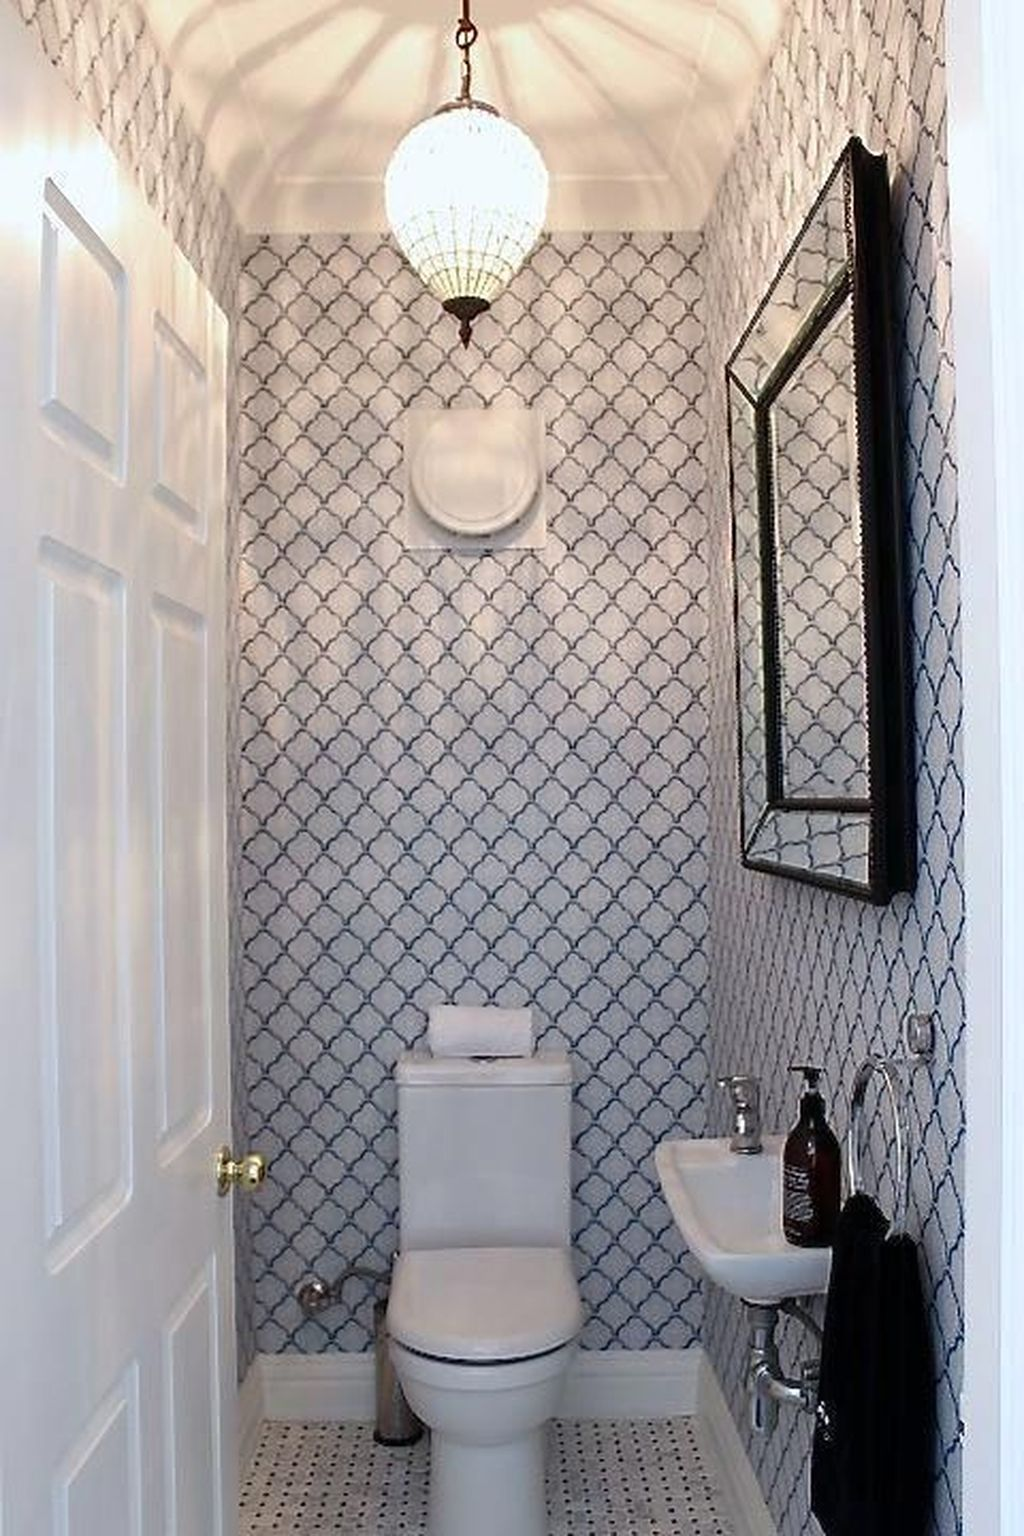 Inspiring Unique Bathroom Ideas That You Should Try 33